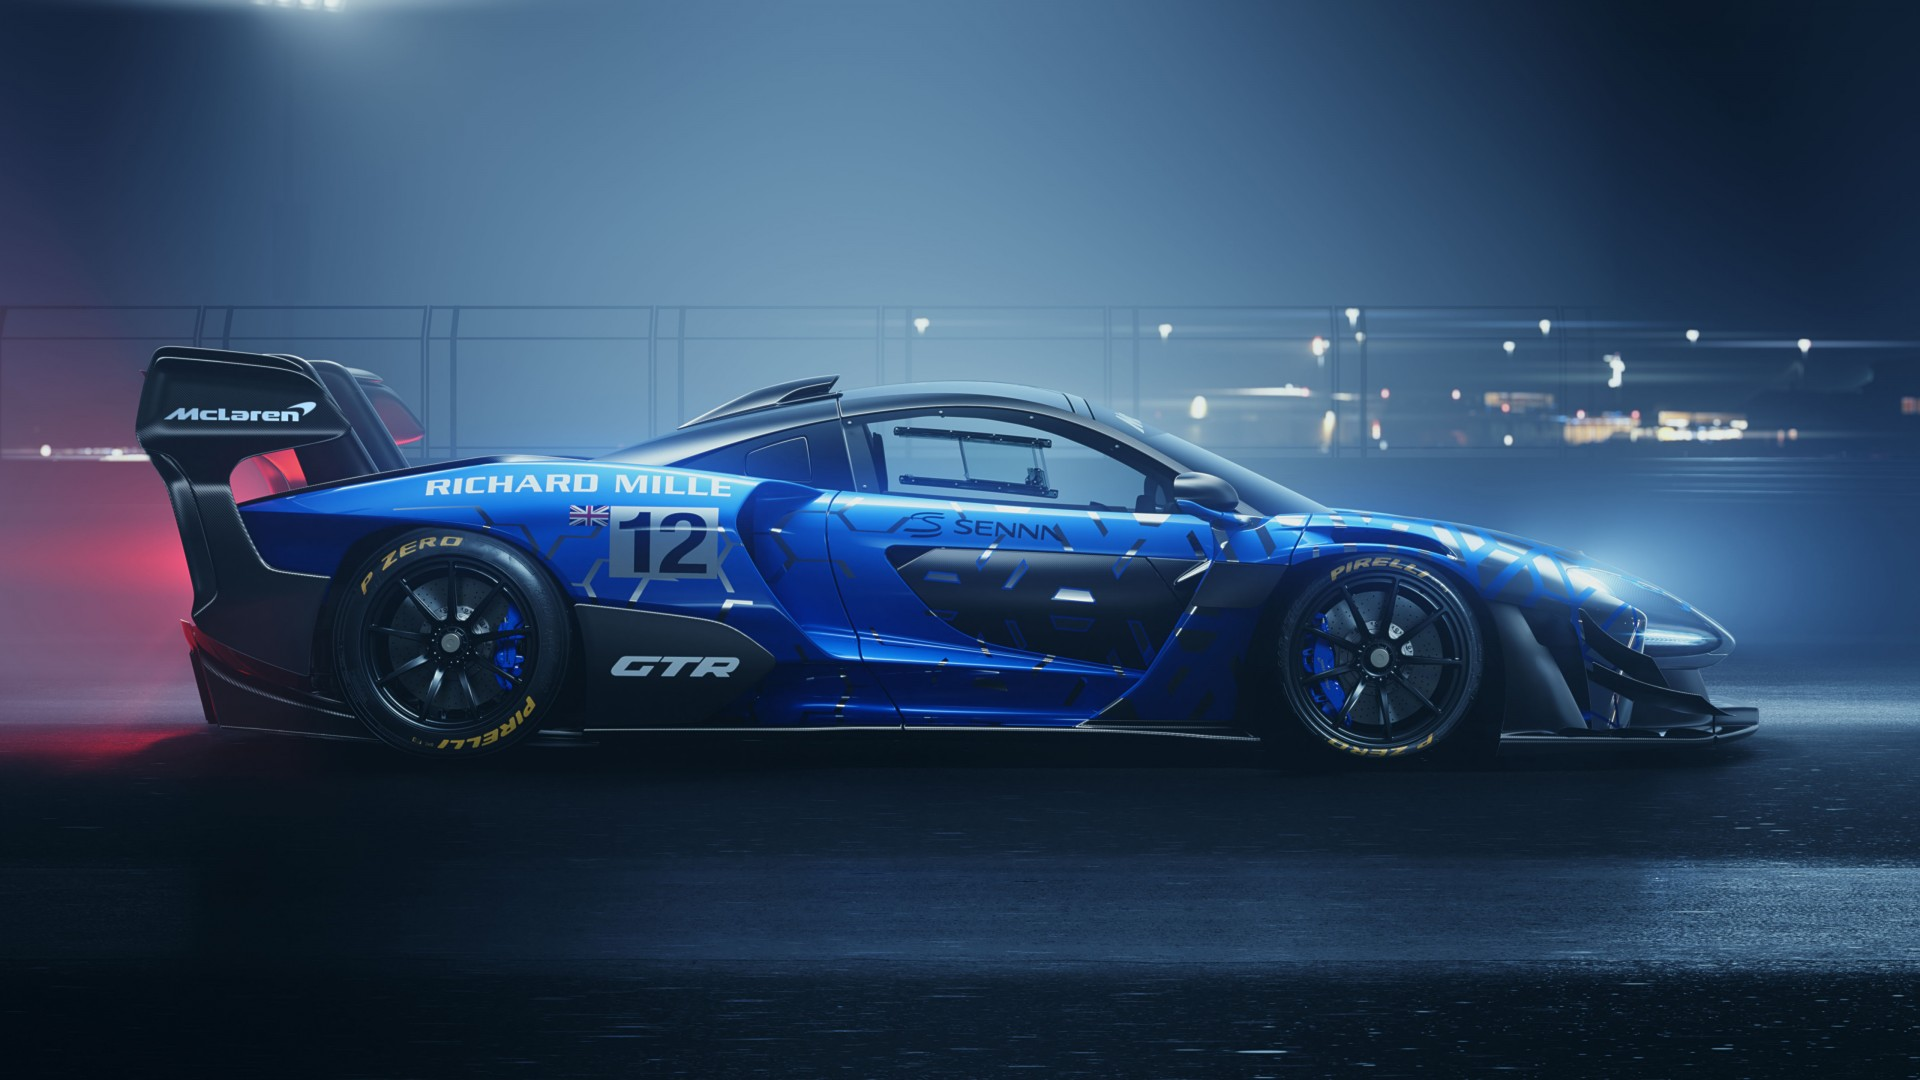 McLaren Senna GTR 2019 5K 4 Wallpaper | HD Car Wallpapers ...